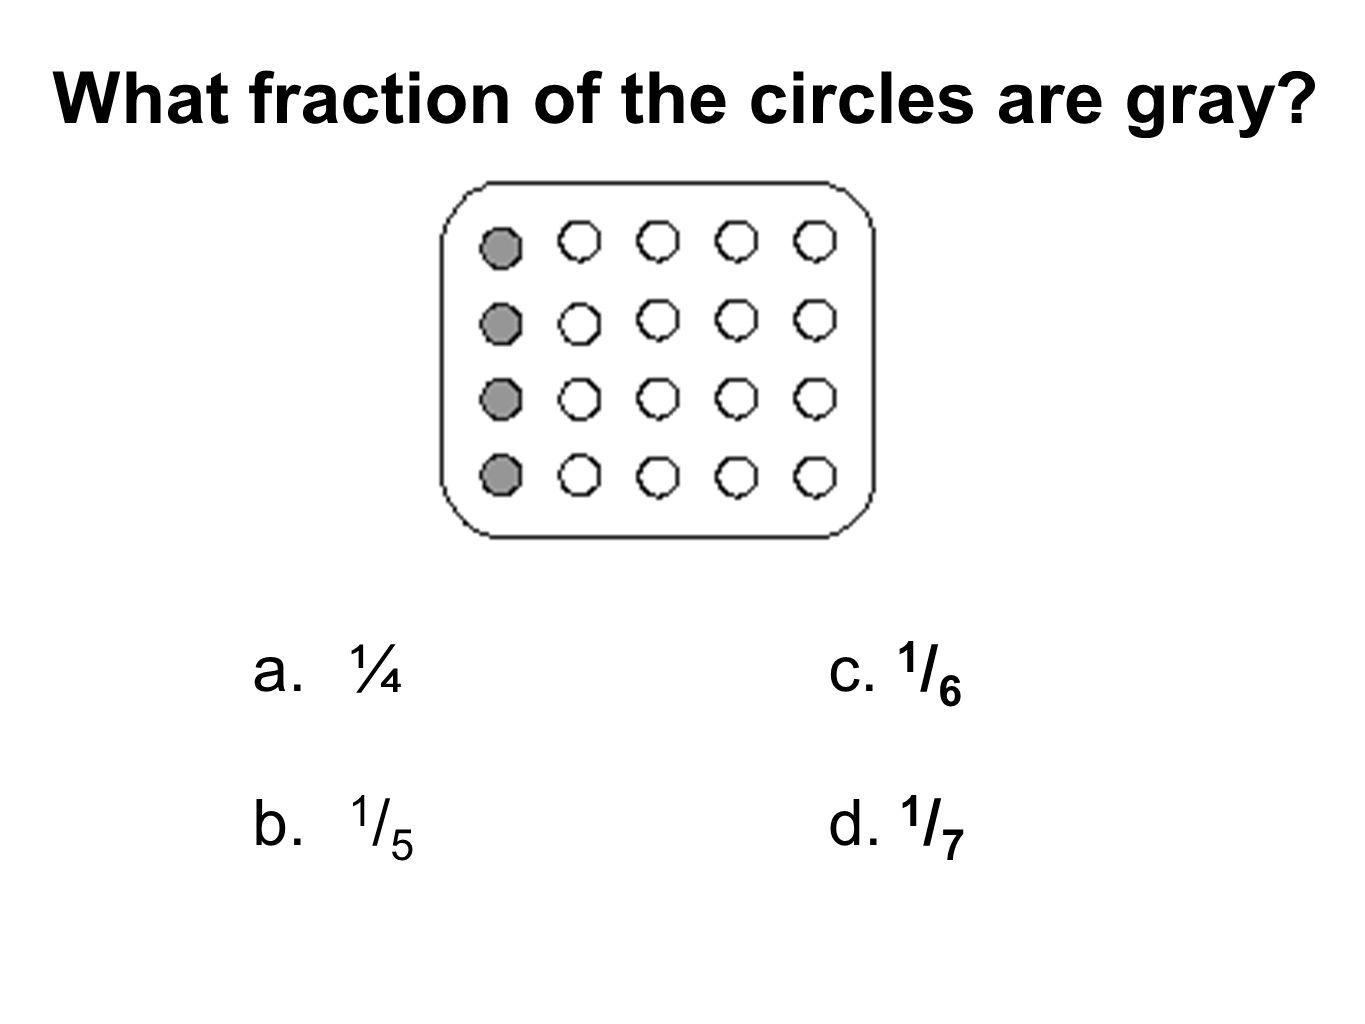 What fraction of the circles are gray